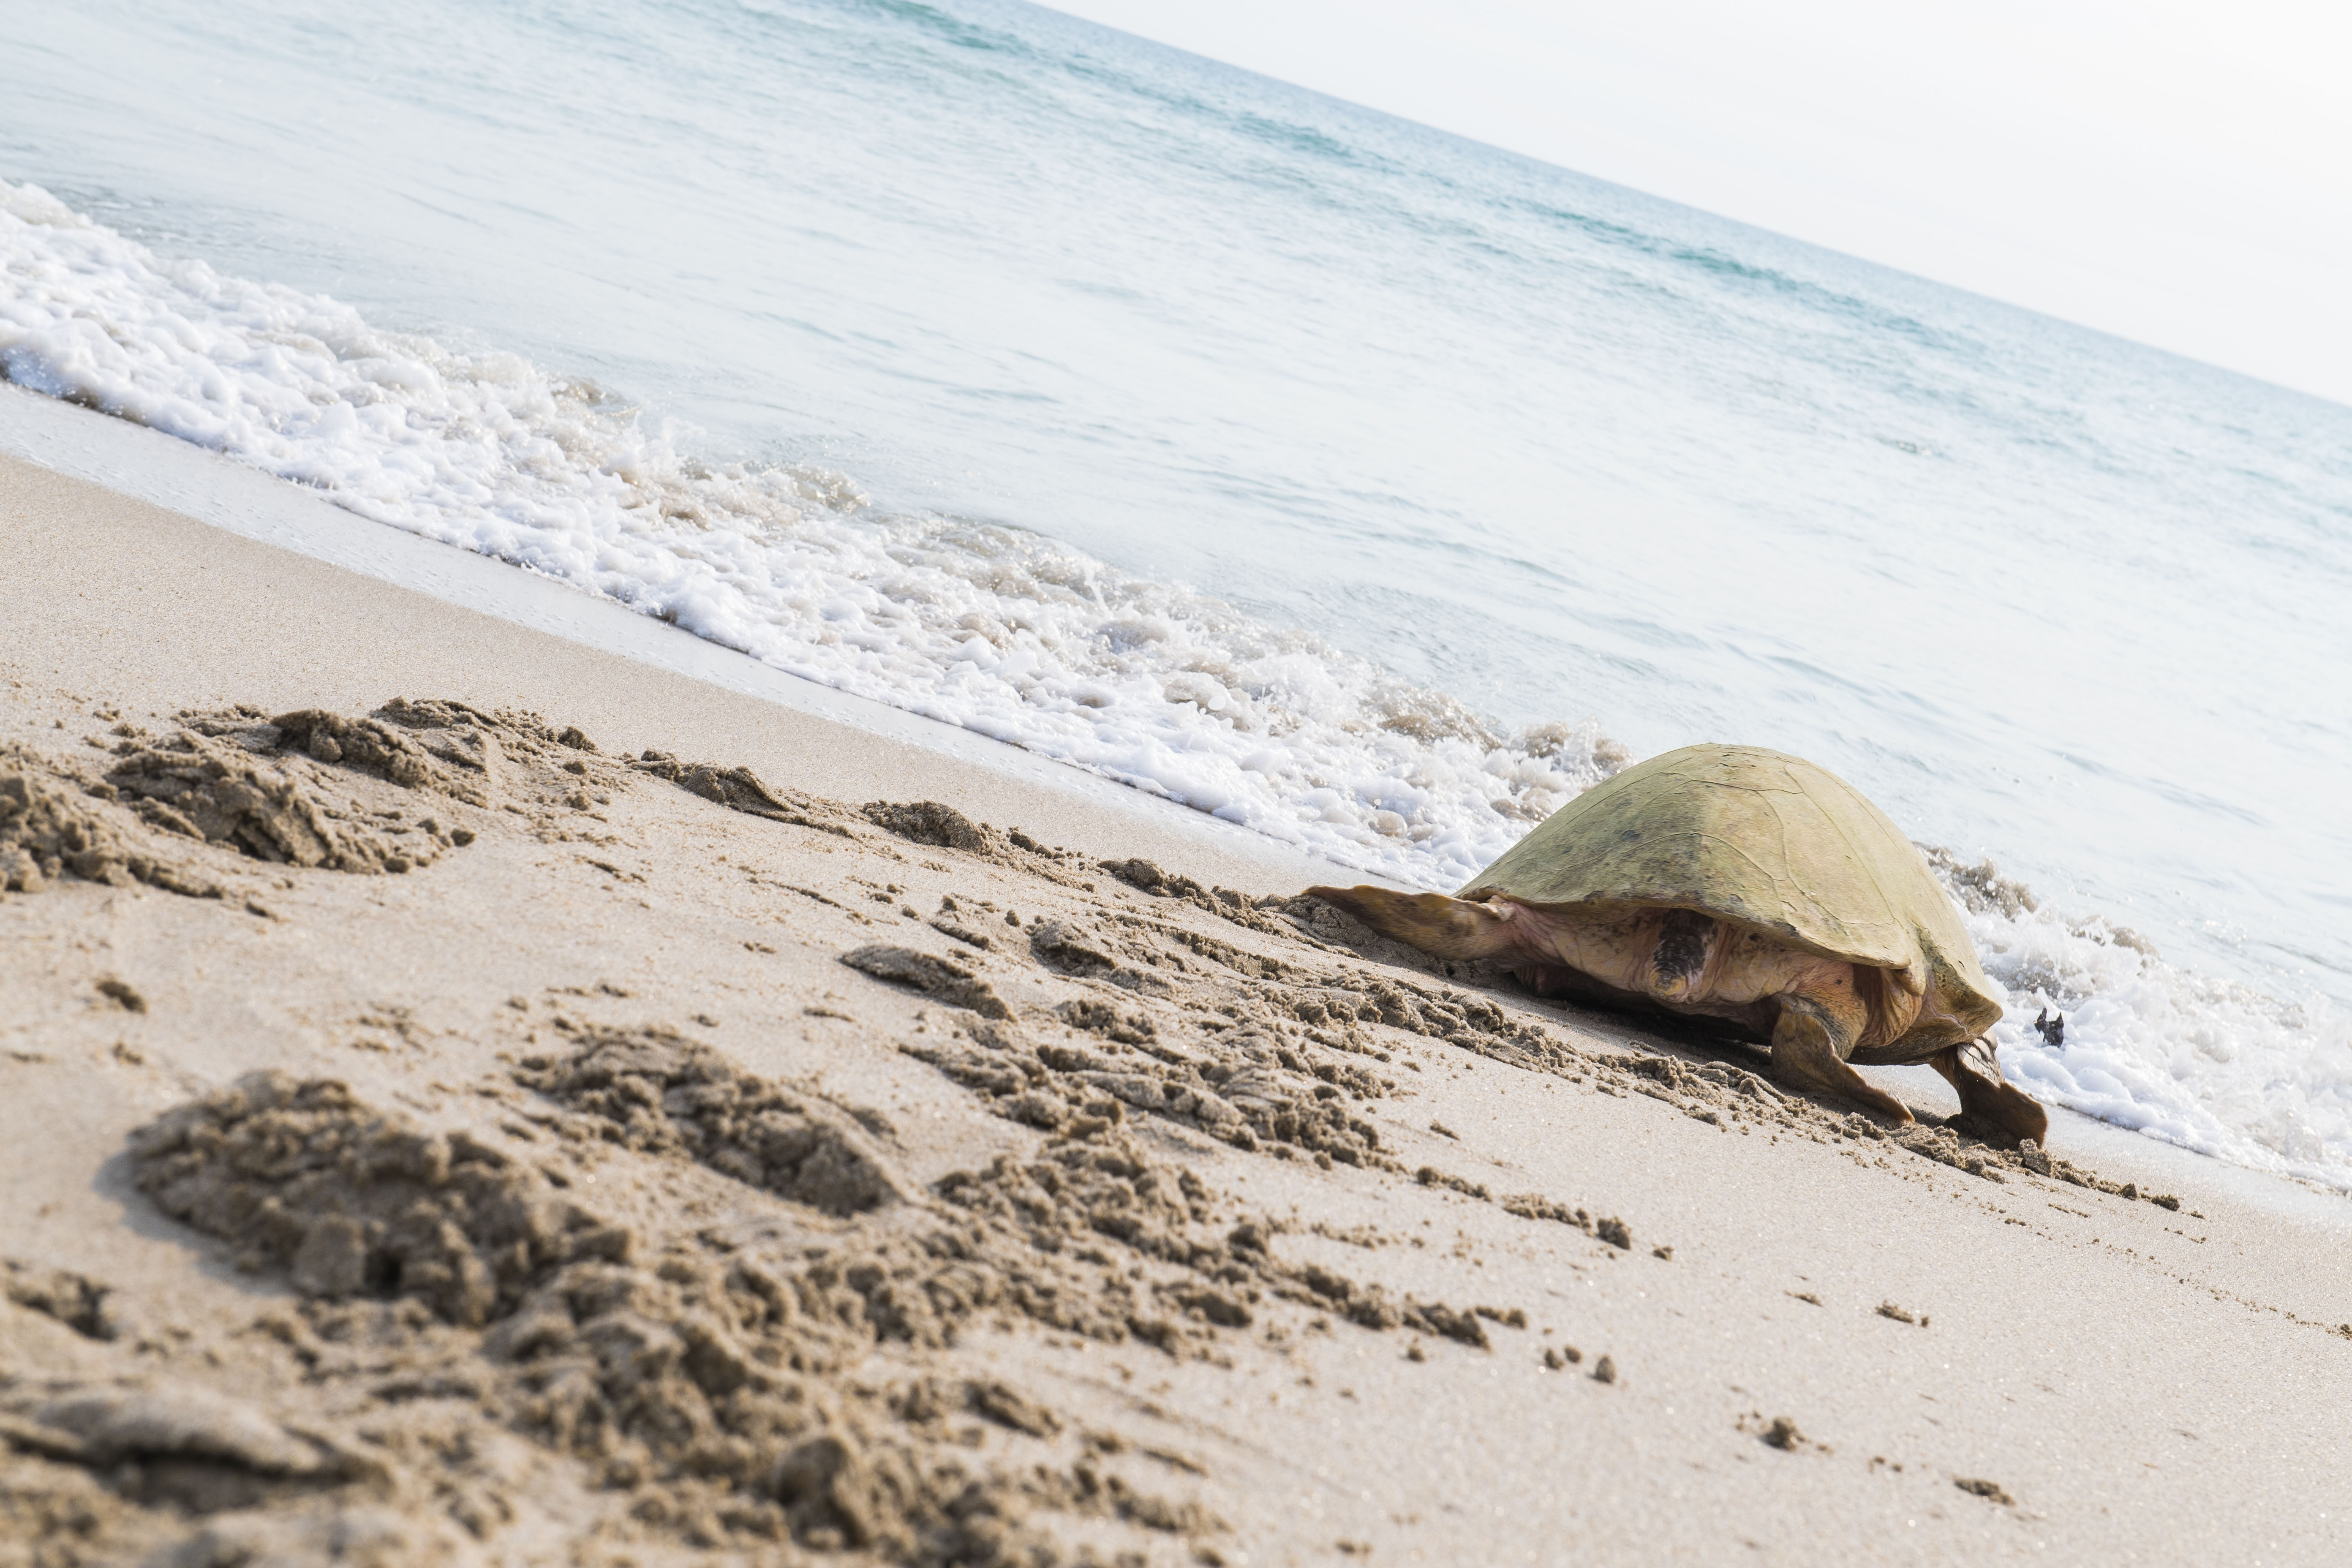 Endangered Sea Turtles Are Having A Record Nesting Year On